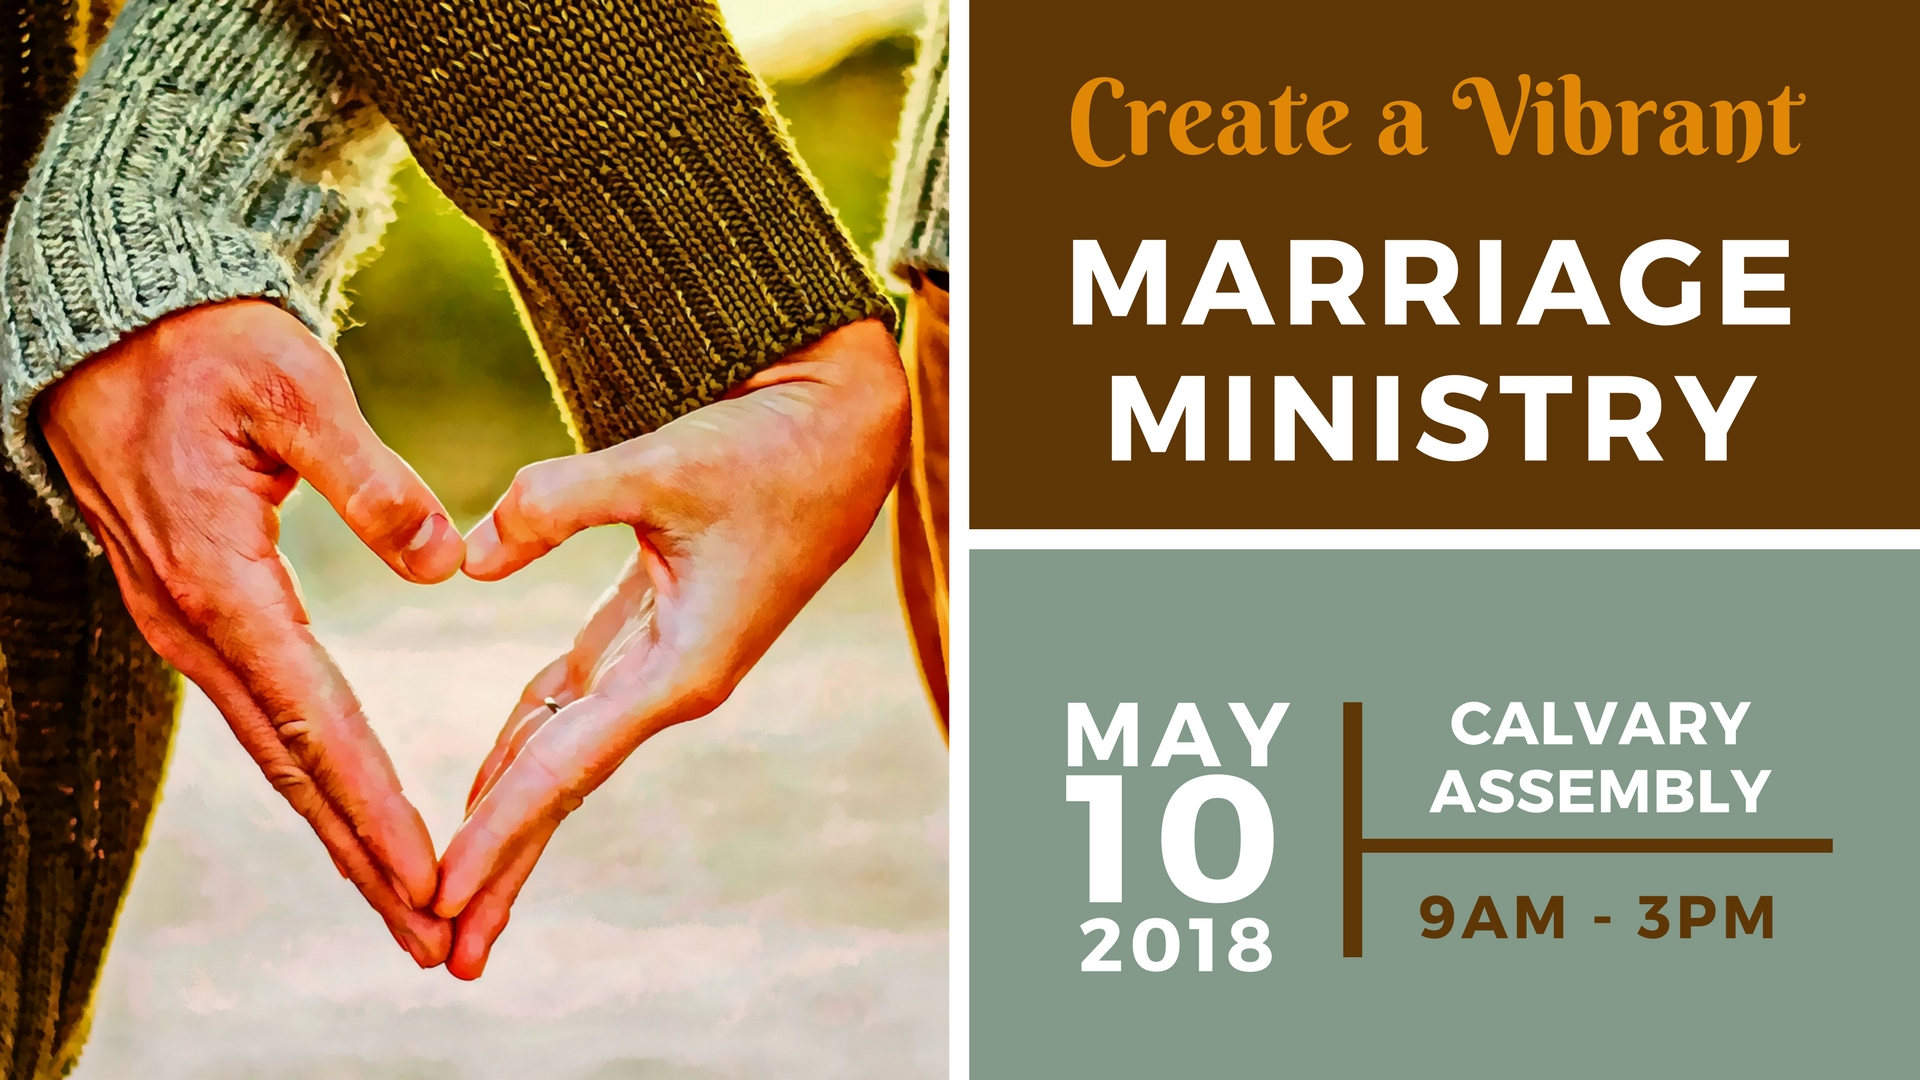 Marriage Ministry Workshop on May 10 at Calvary Assembly